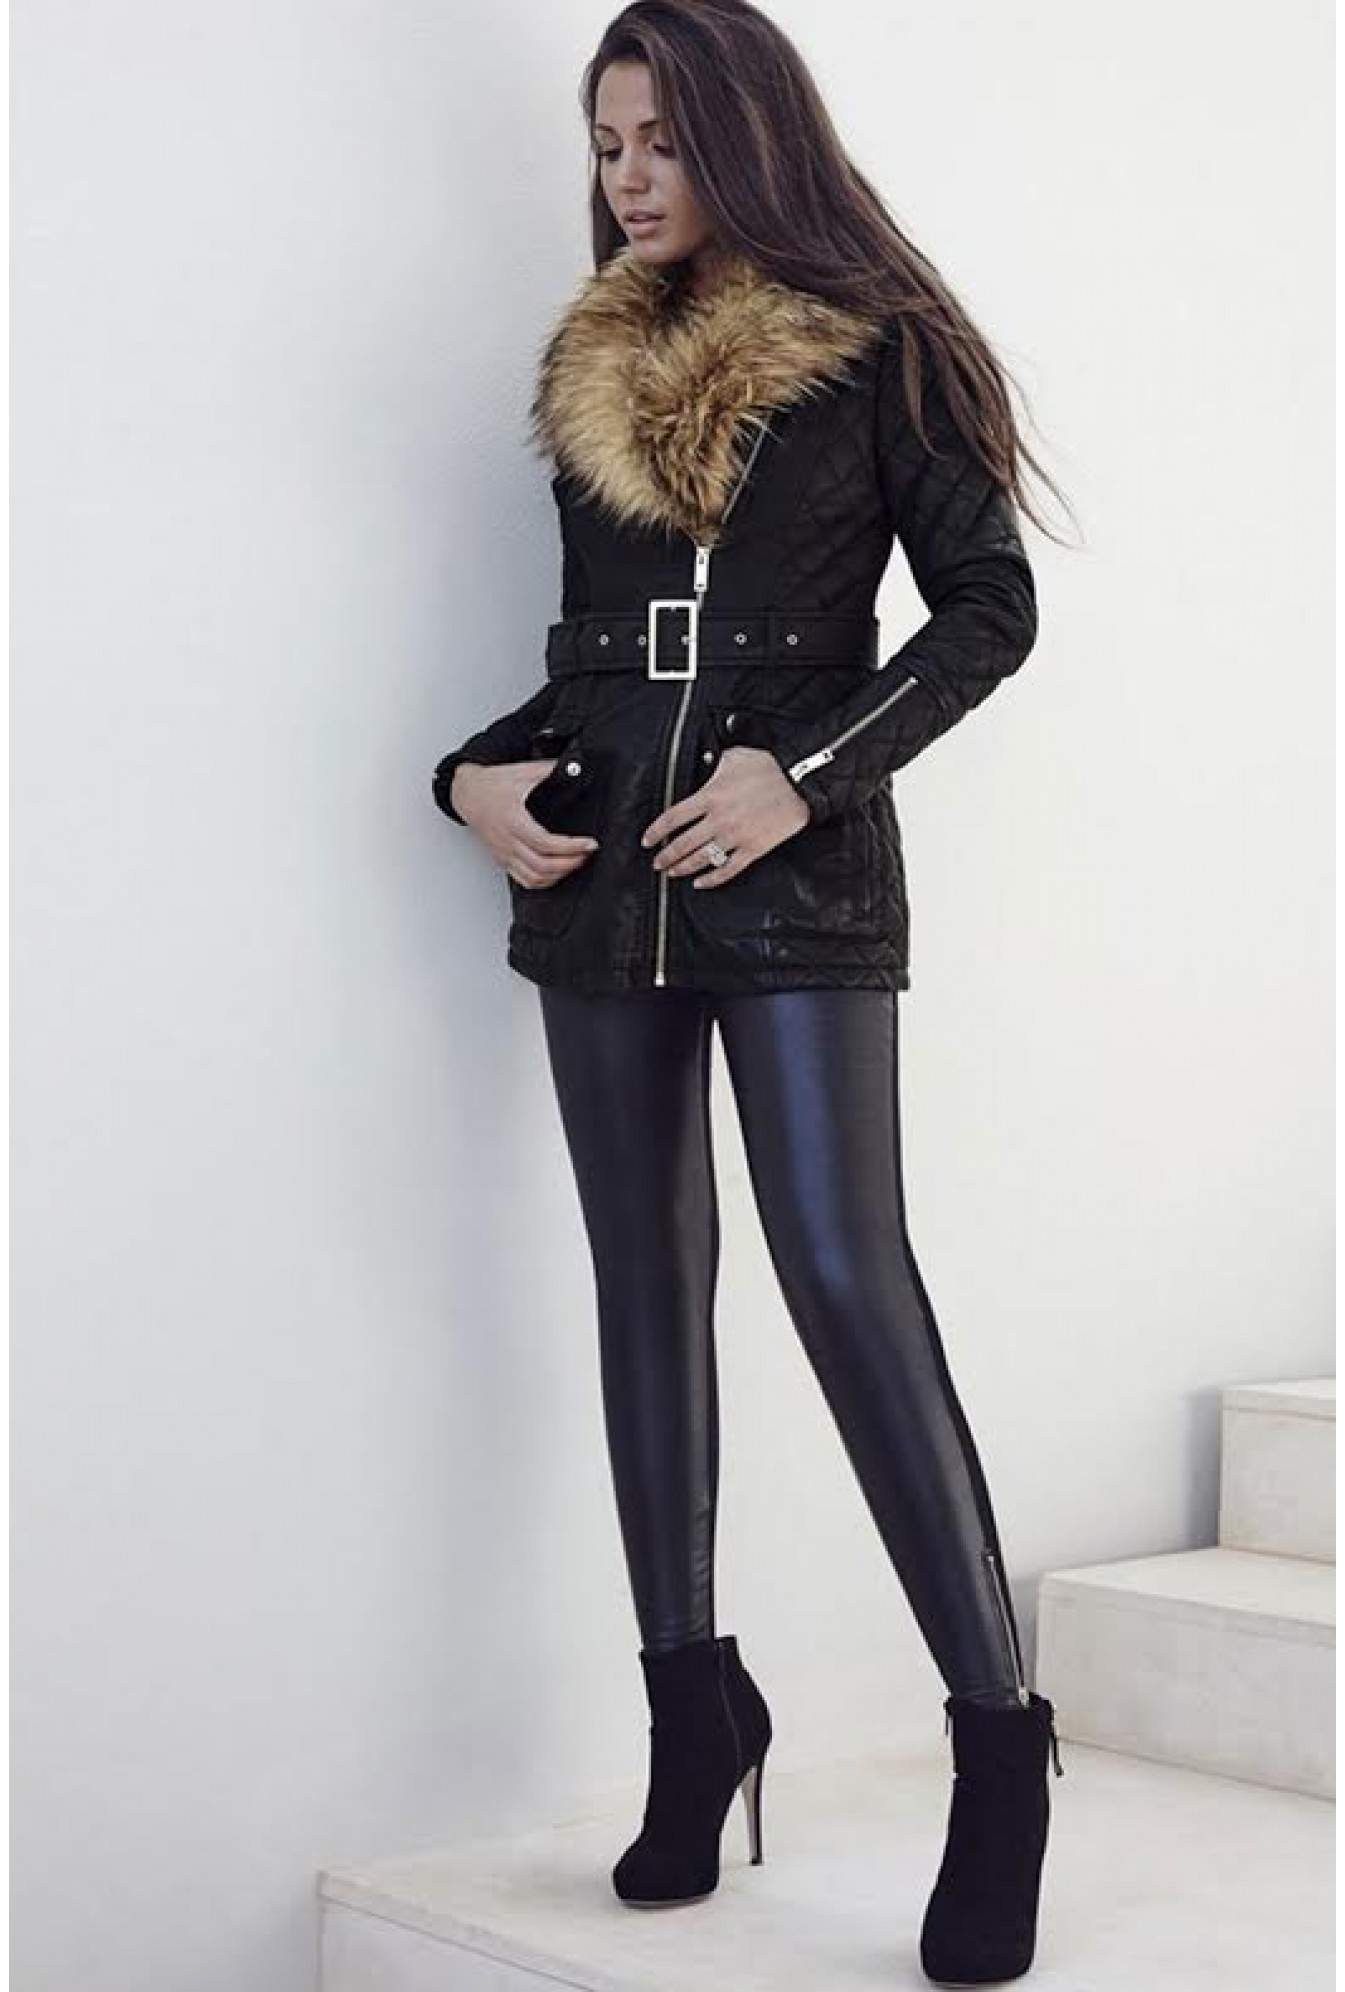 d11d8a565c31a Lipsy Michelle Keegan Side Zip Detail Faux Leather Leggings | iCLOTHING